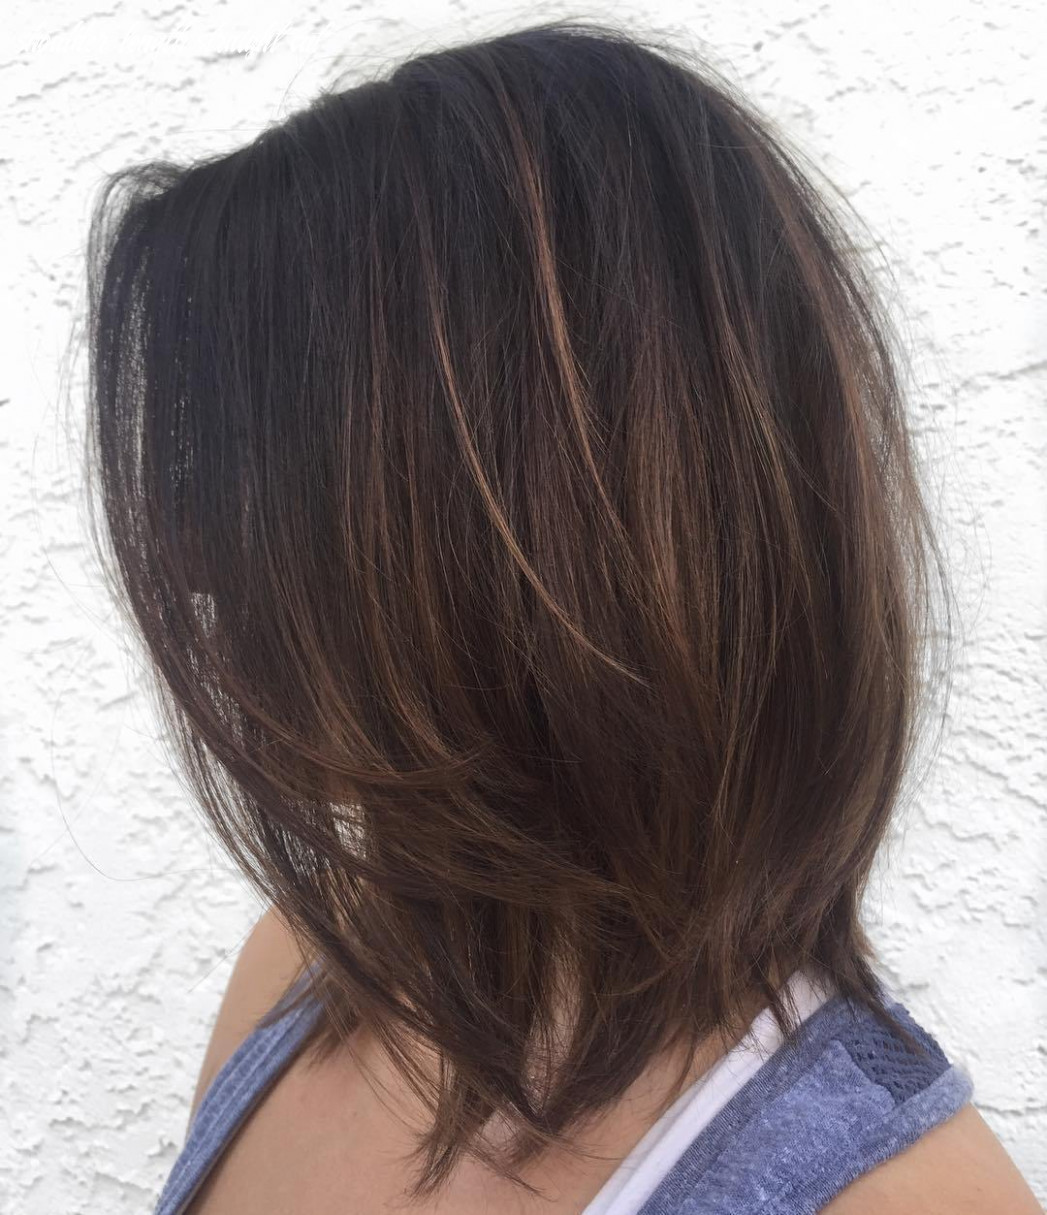 8 Perfect Medium Length Hairstyles for Thin Hair in 8